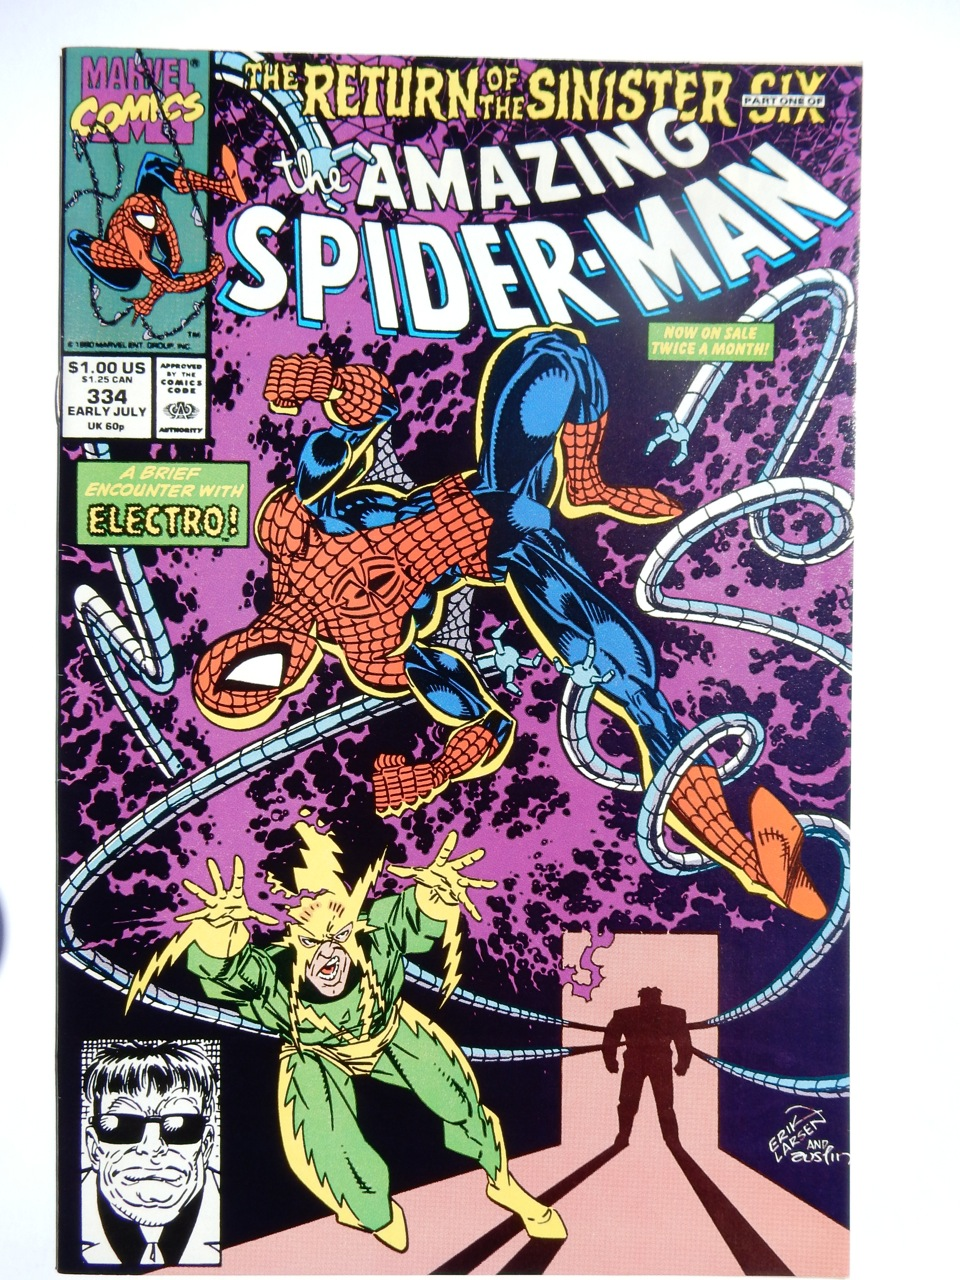 Amazing Spider-Man #334